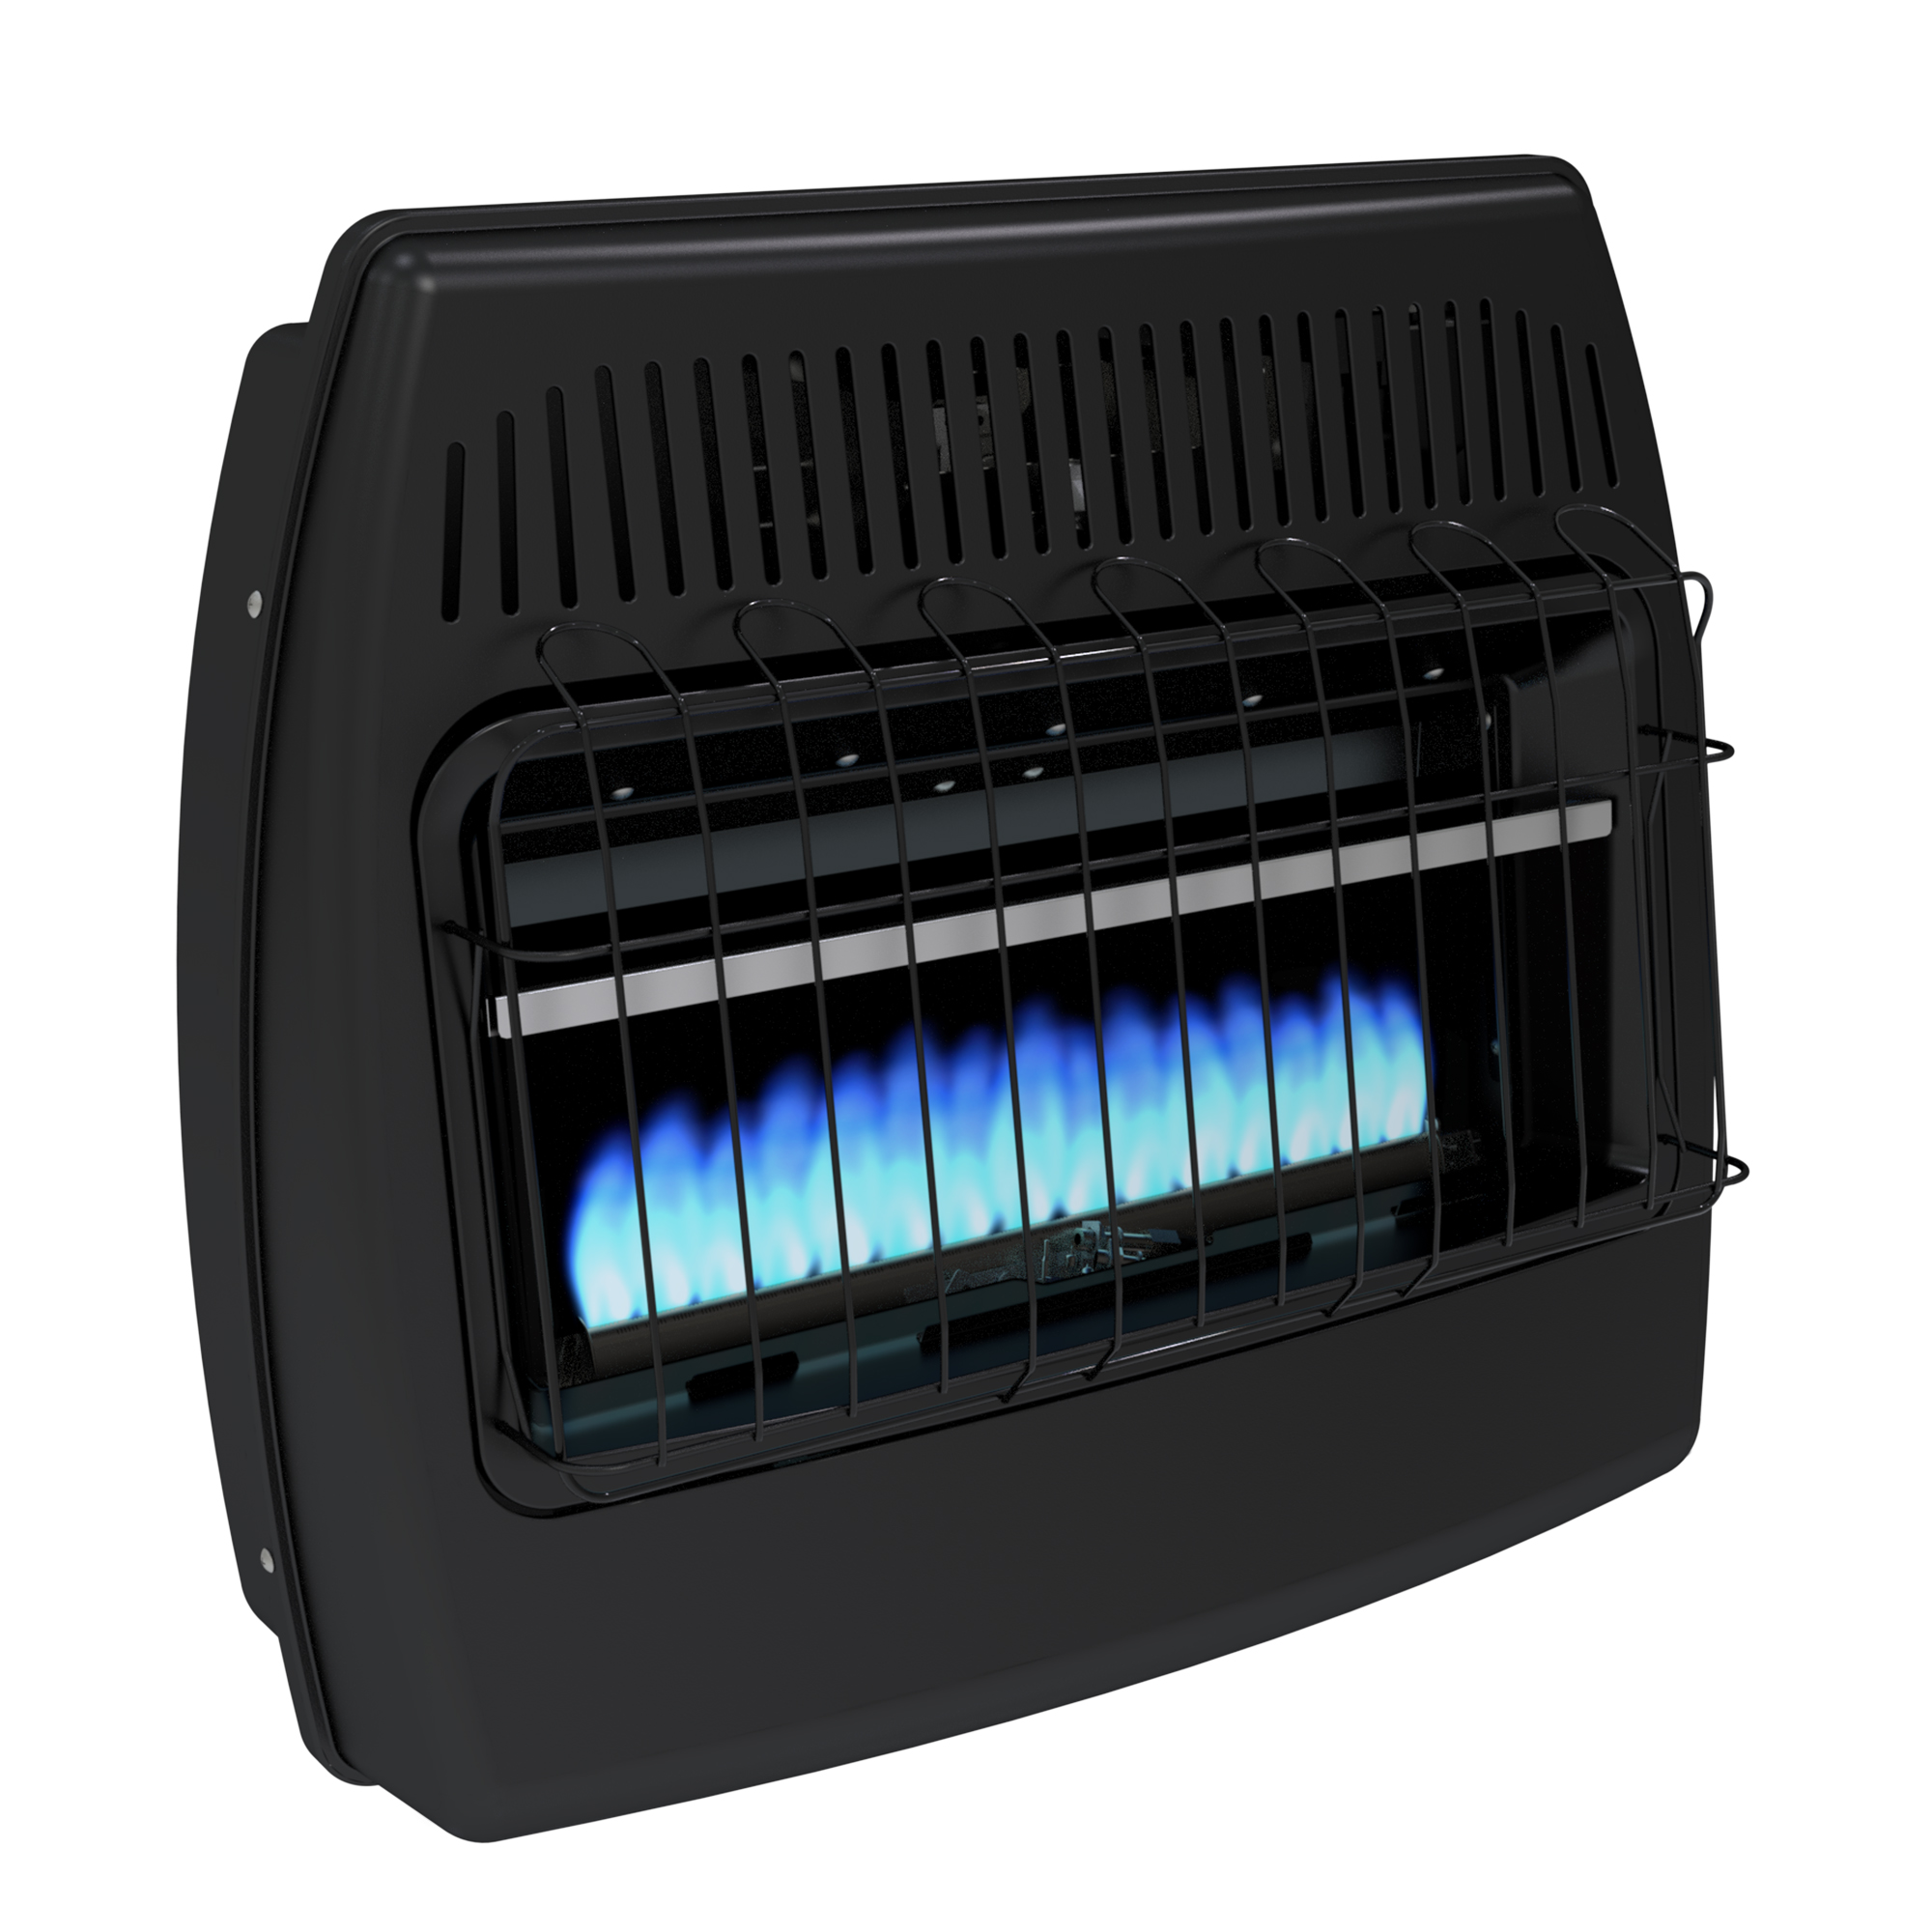 Dyna-Glo 30,000 BTU Blue Flame Vent Free Thermostatic Garage Heater